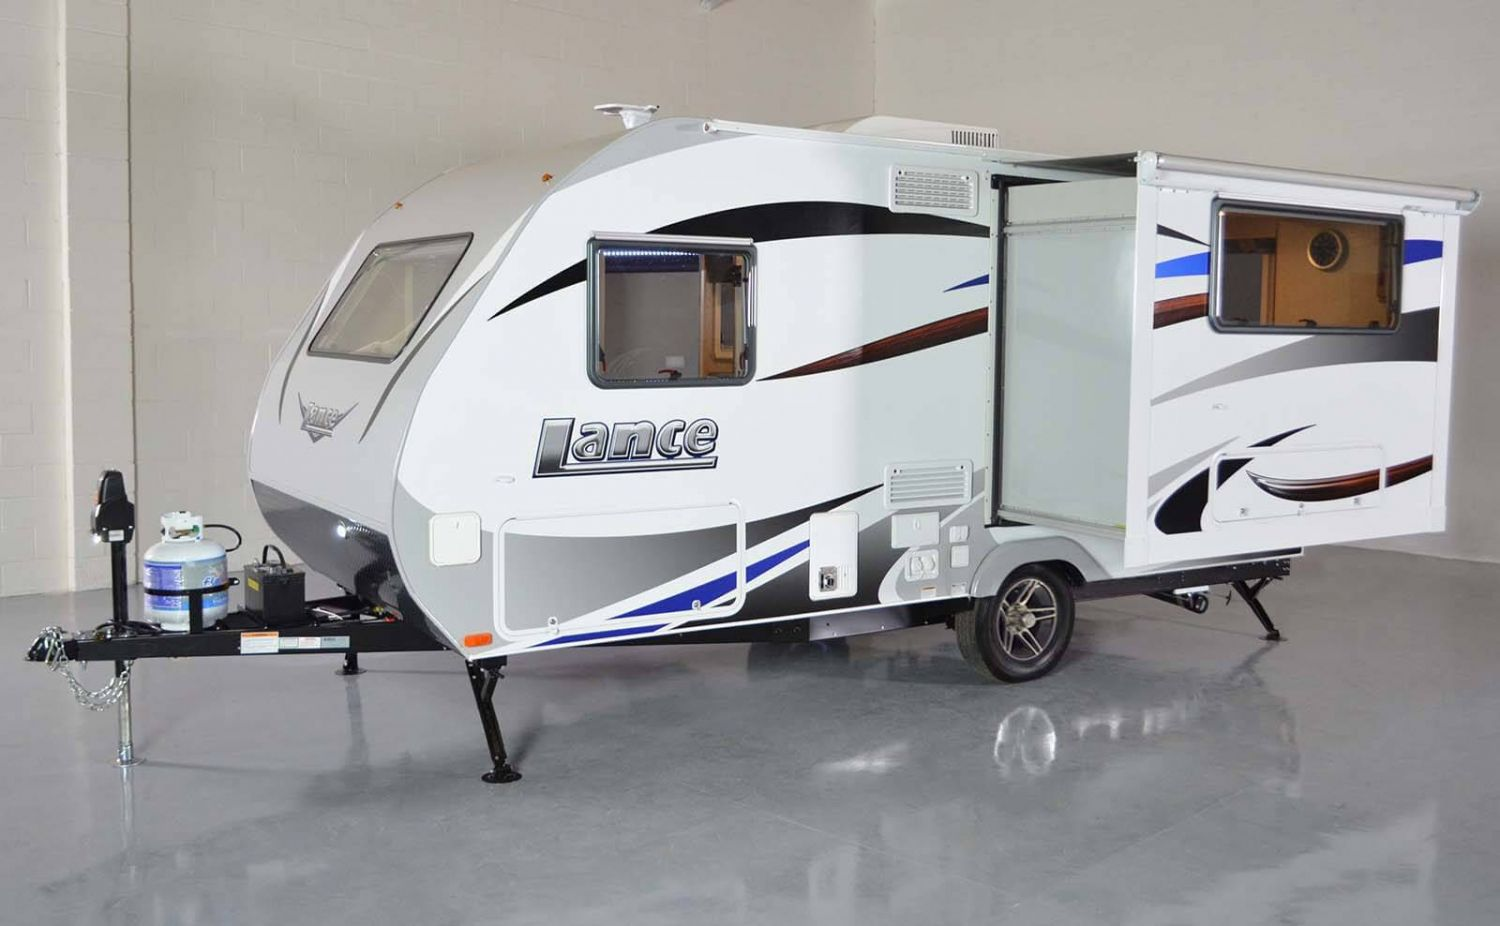 Best Small Travel Trailer With Shower  Small Boat Trailers Check Best Small Camping Trailers With Bathrooms Review